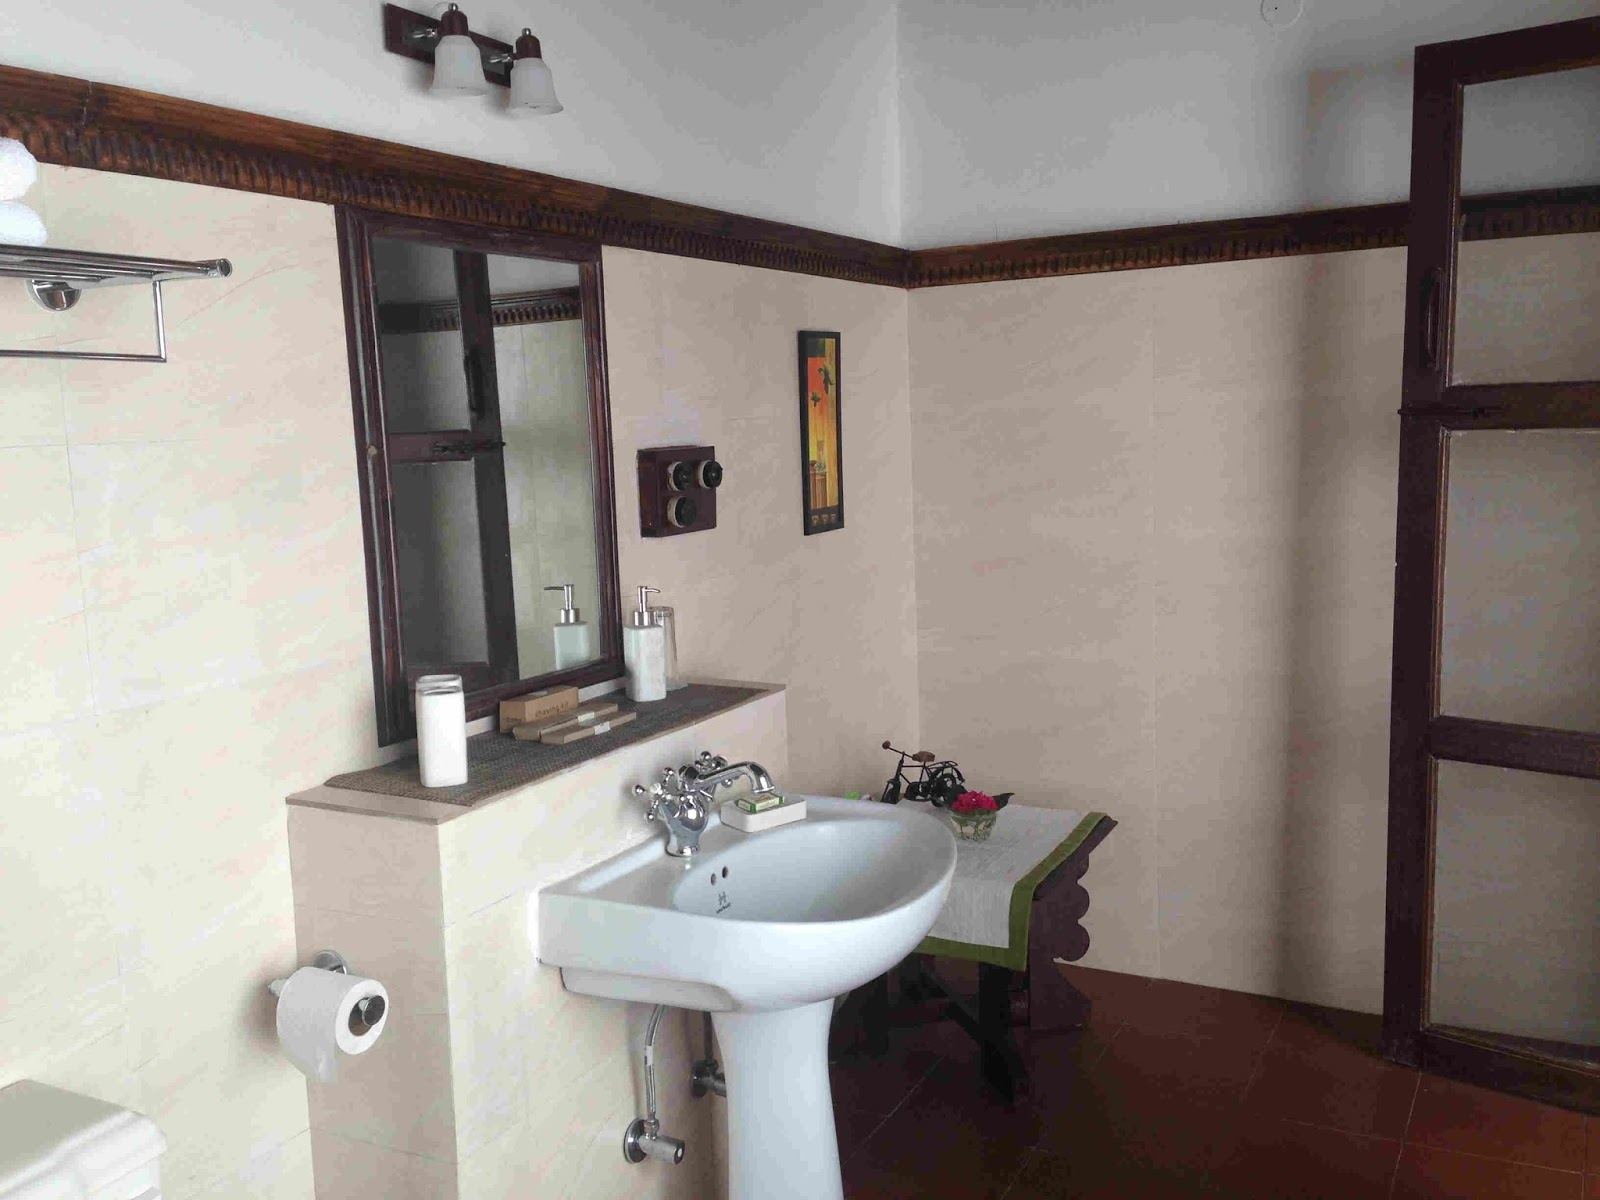 Brickcart blog kerala architecture has been bangalore 39 d Bathroom tiles design in kerala